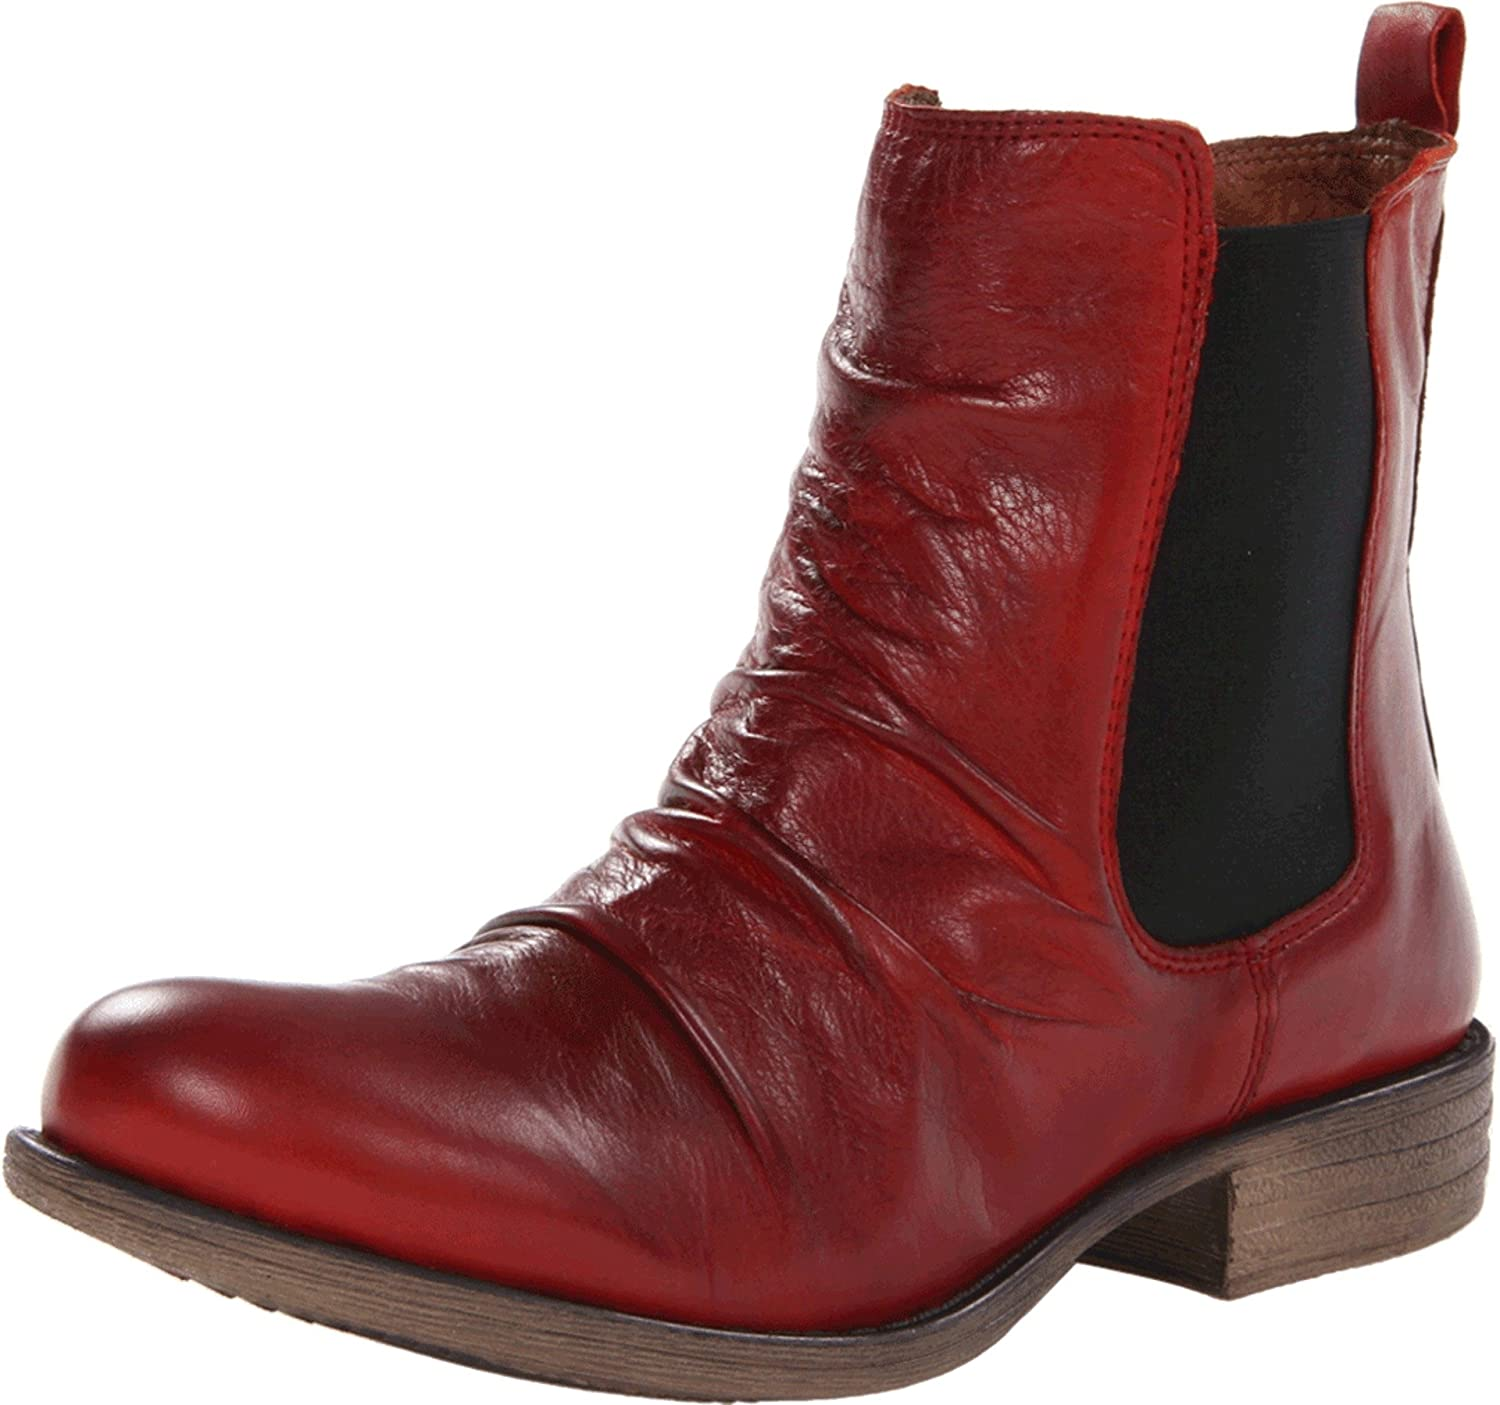 Miz Mooz Women's Lissie Ankle Boot B00CL41LSI 7.5 B(M) US|Red